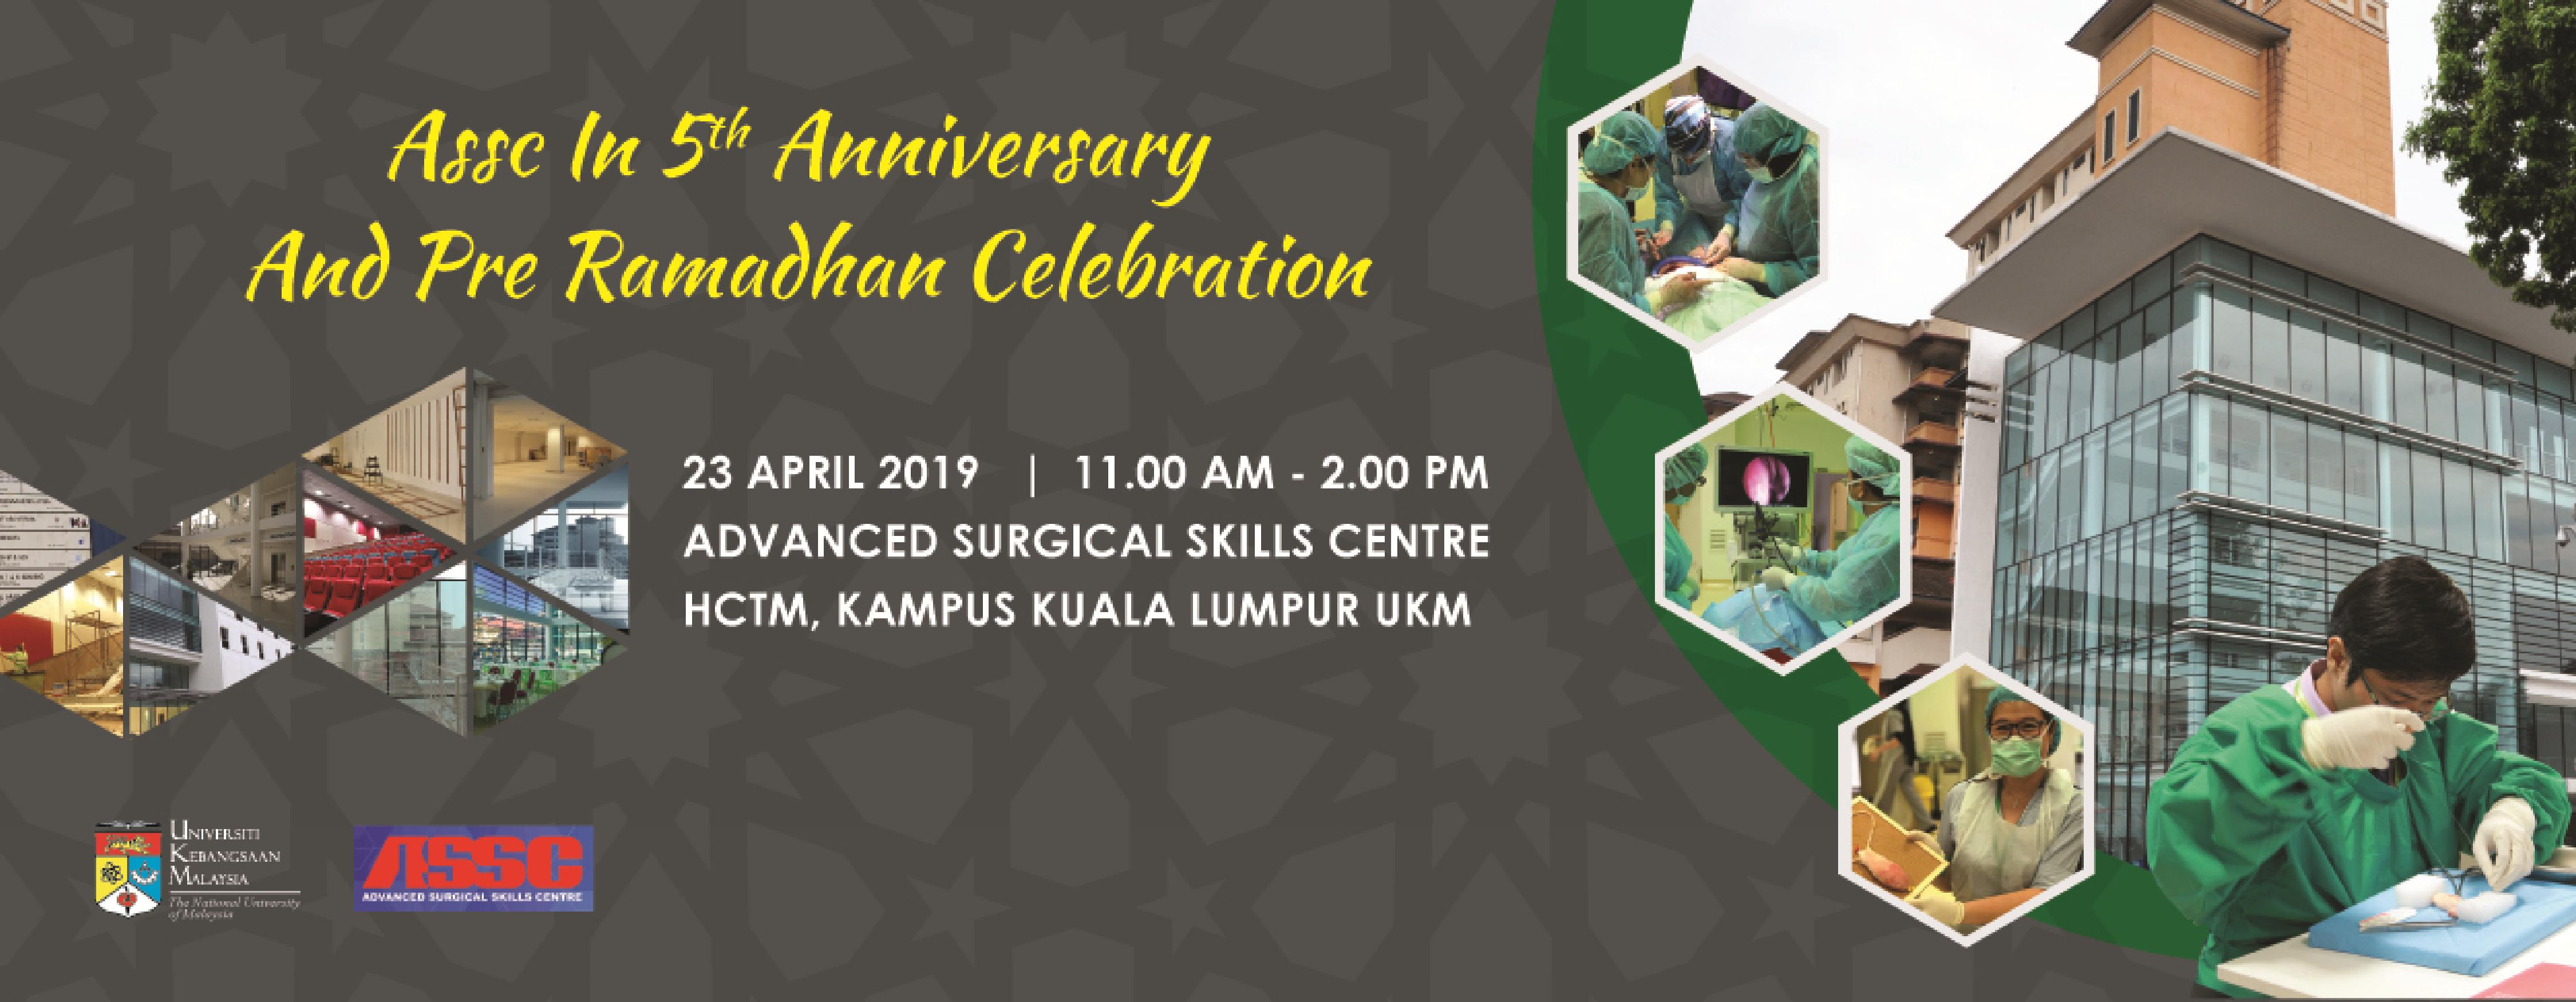 ASSC IN 5th ANNIVERSARY AND PRE-RAMADHAN CELEBRATION